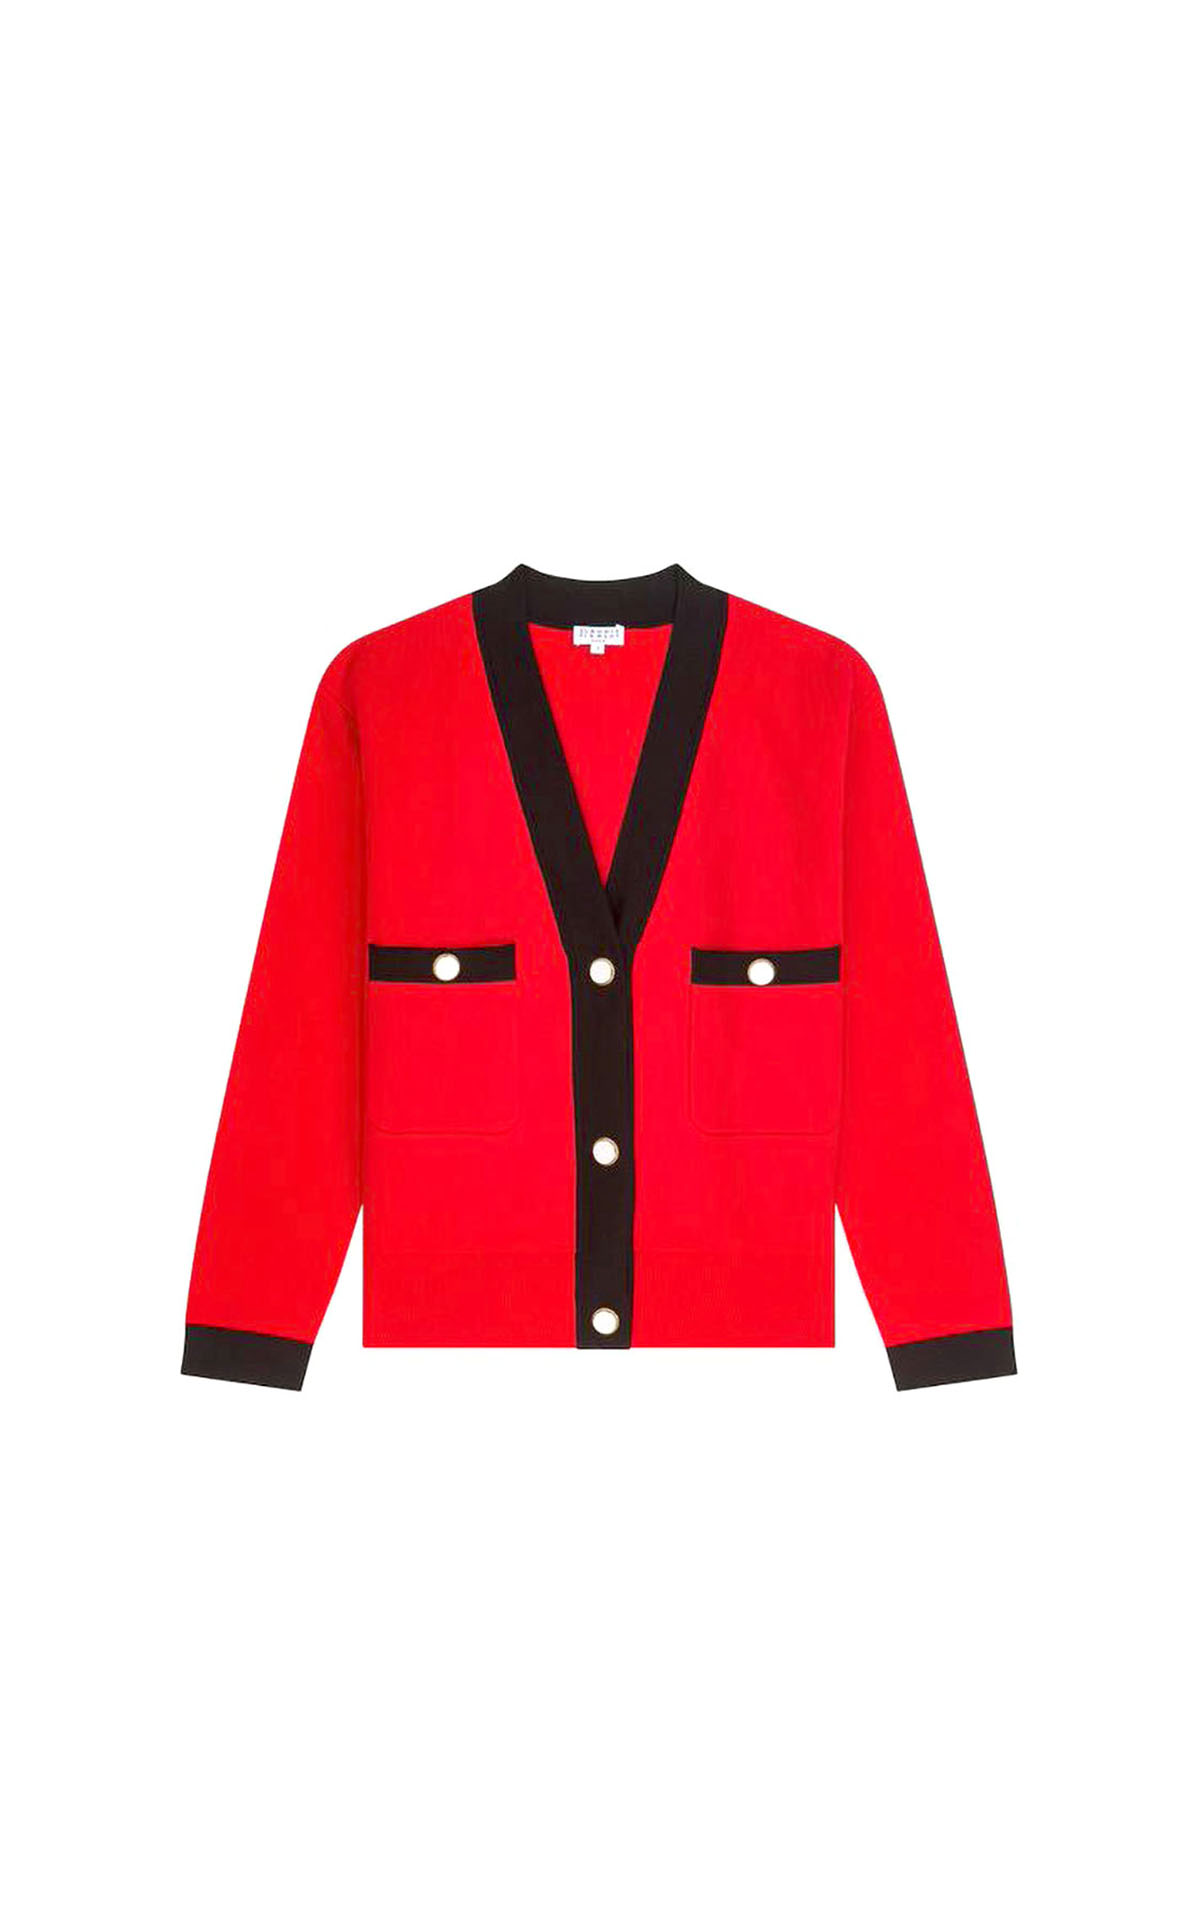 Claudie Pierlot cardigan at The Bicester Village Shopping Collection